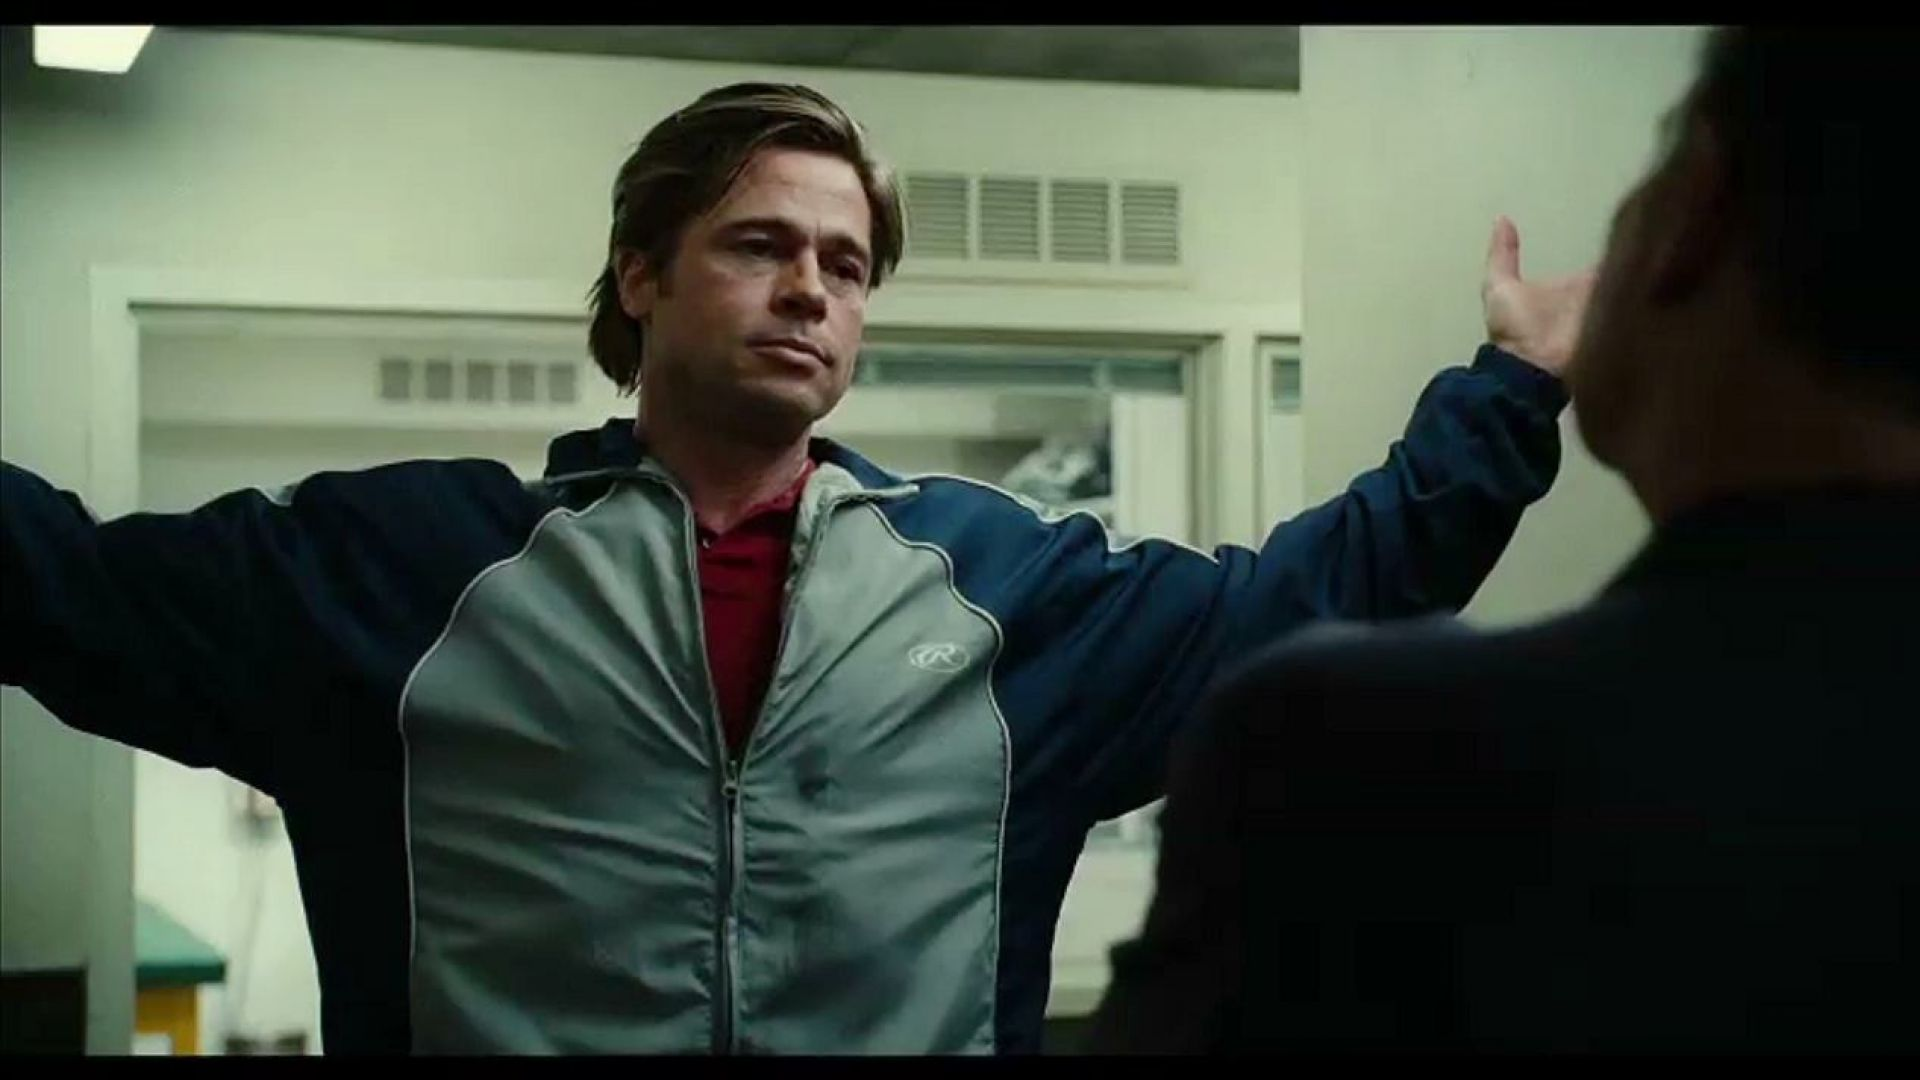 Moneyball as the metaphor...